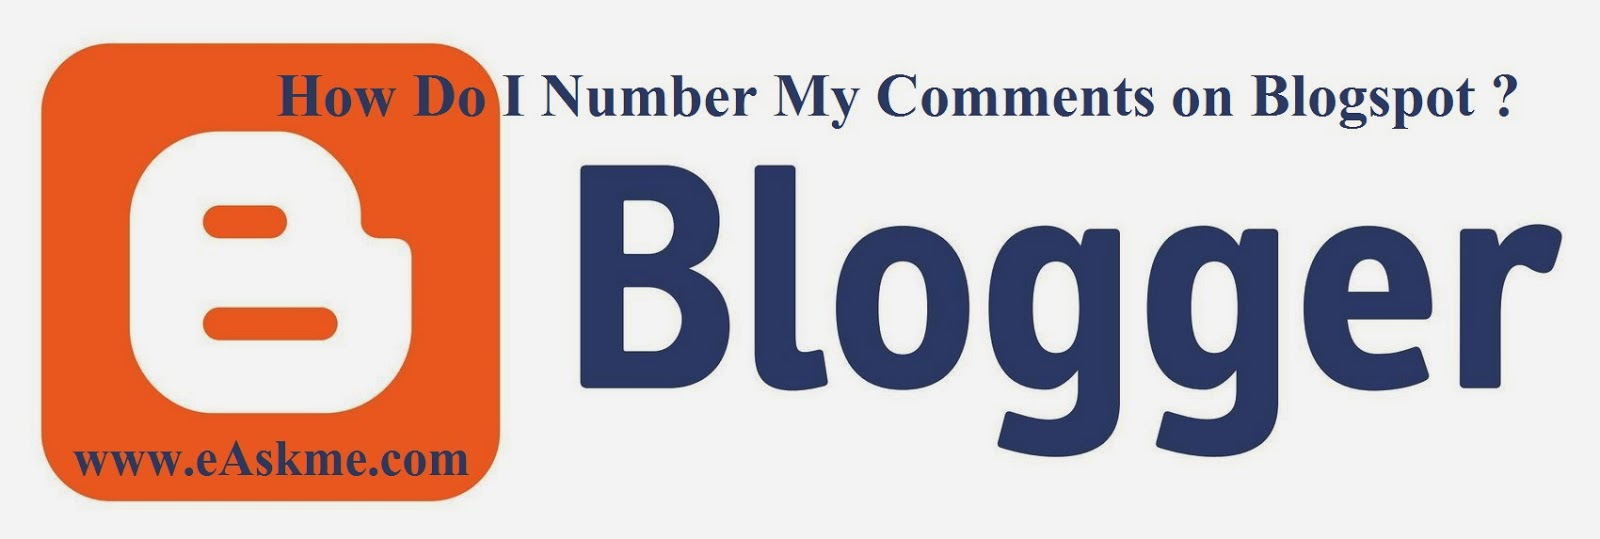 How Do I Number My Comments on Blogspot : eAskme